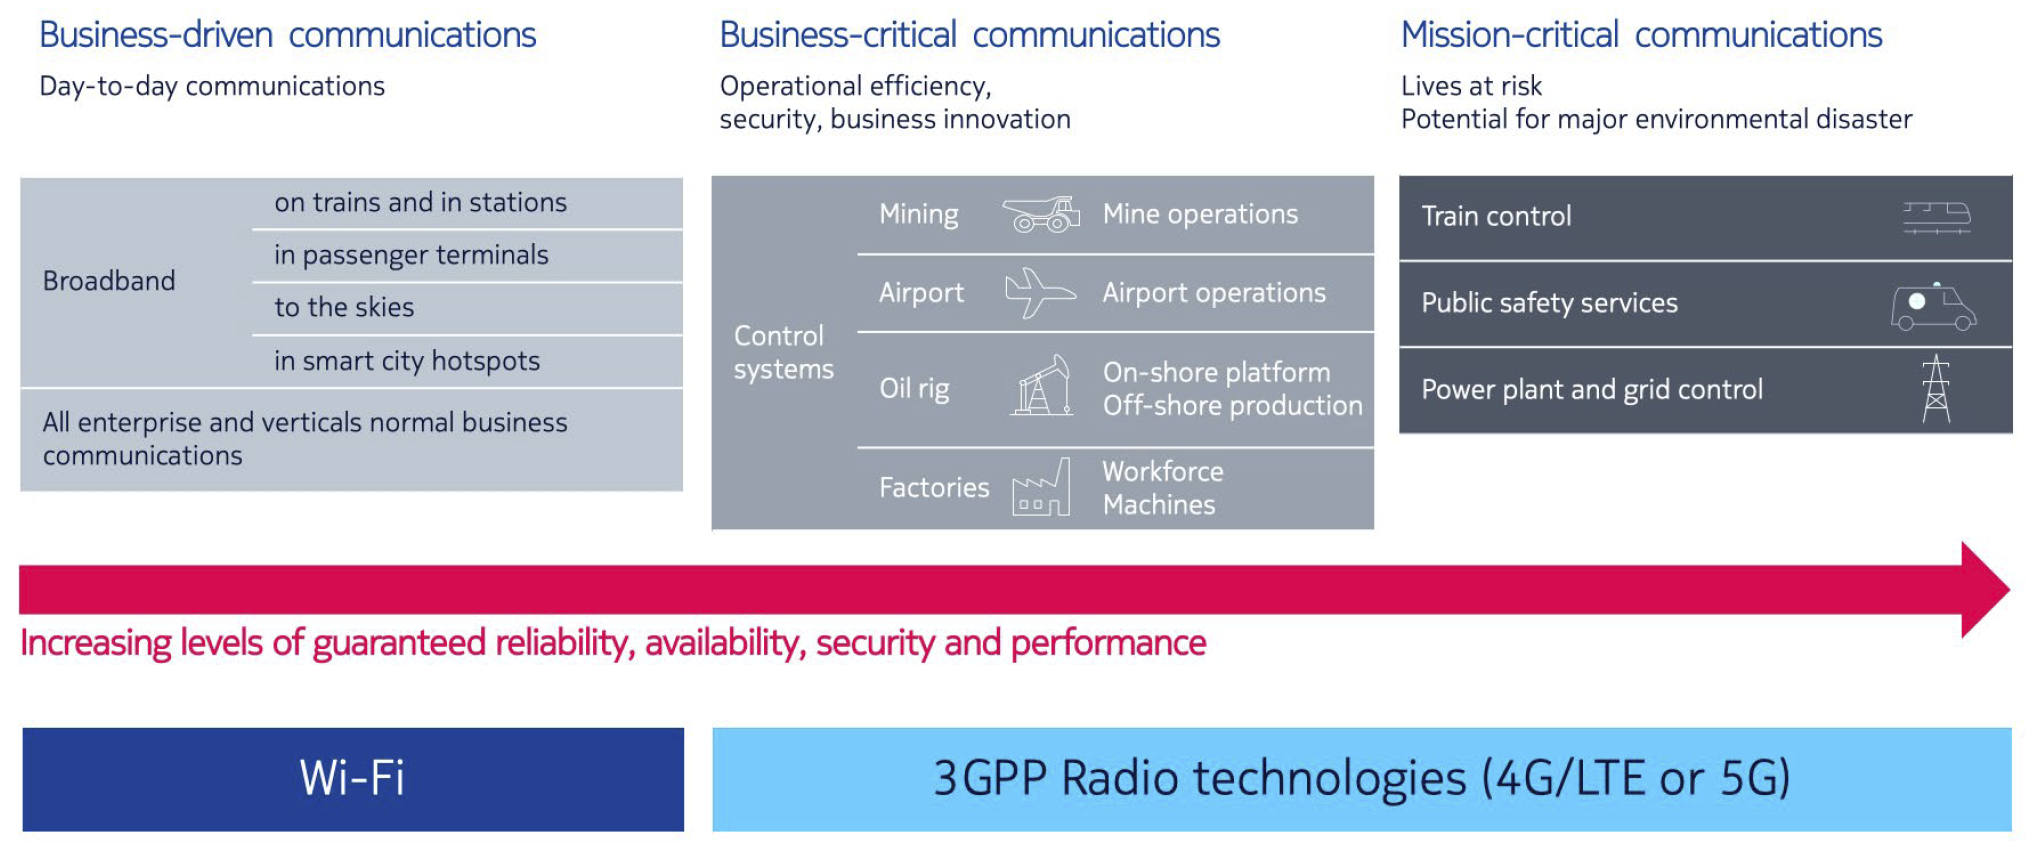 Figure 2. The different levels of criticality in enterprise networking and the capabilities of the two main wireless networking technologies compared.